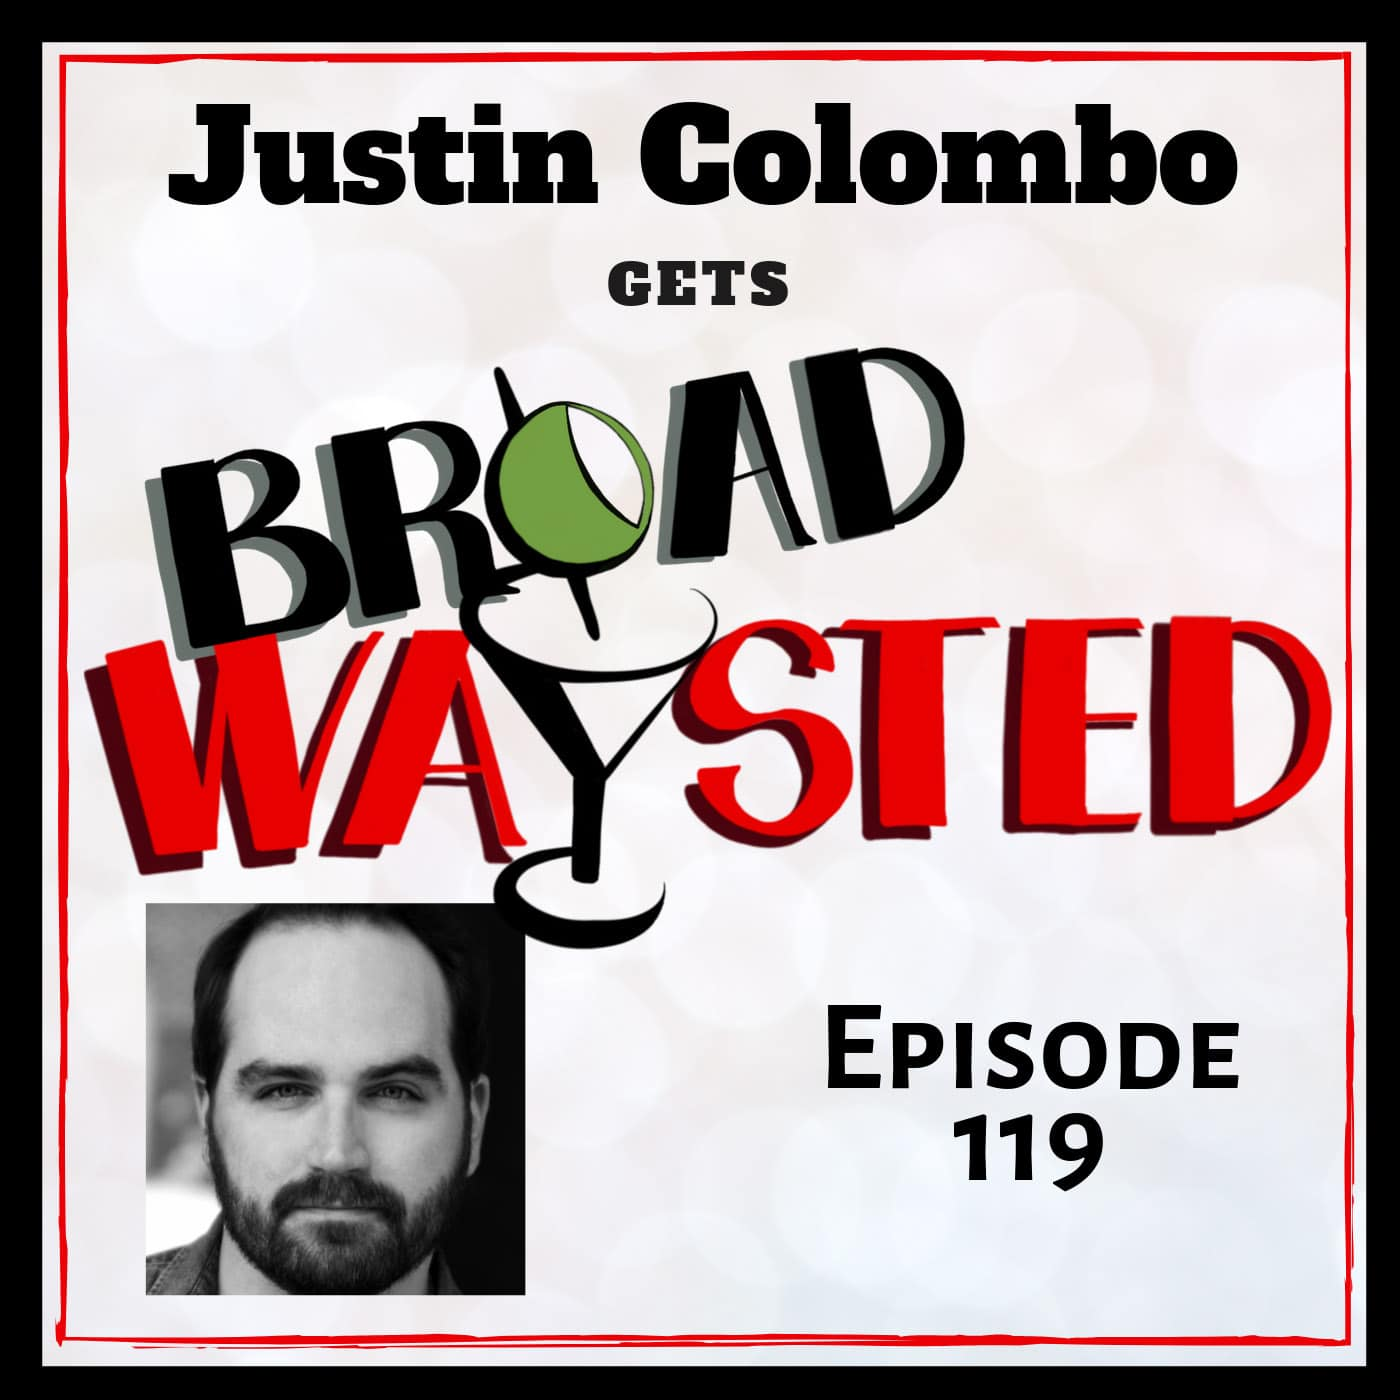 Broadwaysted Ep 119 Justin Colombo